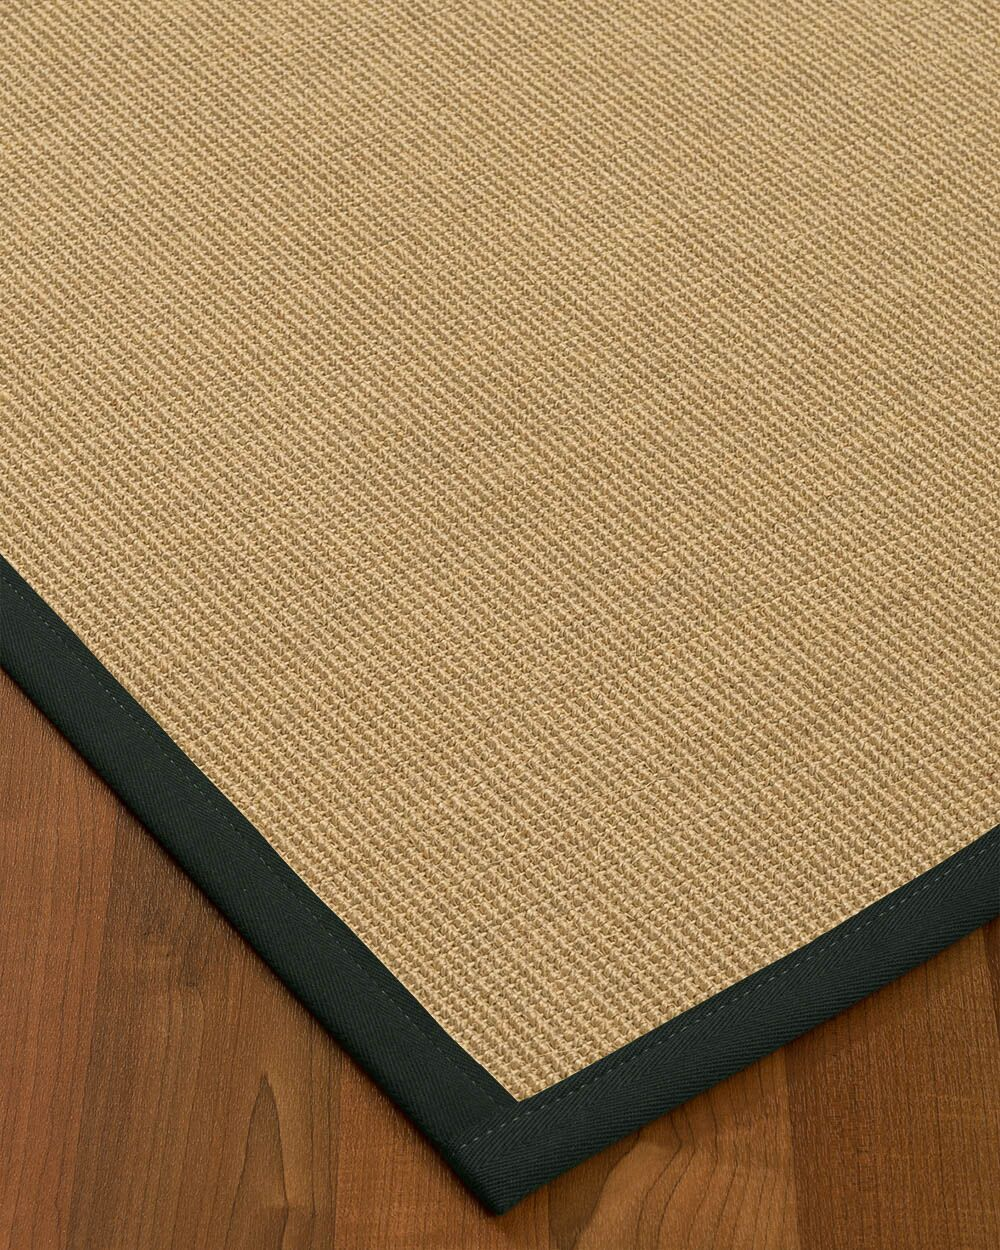 Atwell Border Hand-Woven Beige/Onyx Area Rug Rug Size: Rectangle 4' x 6', Rug Pad Included: Yes